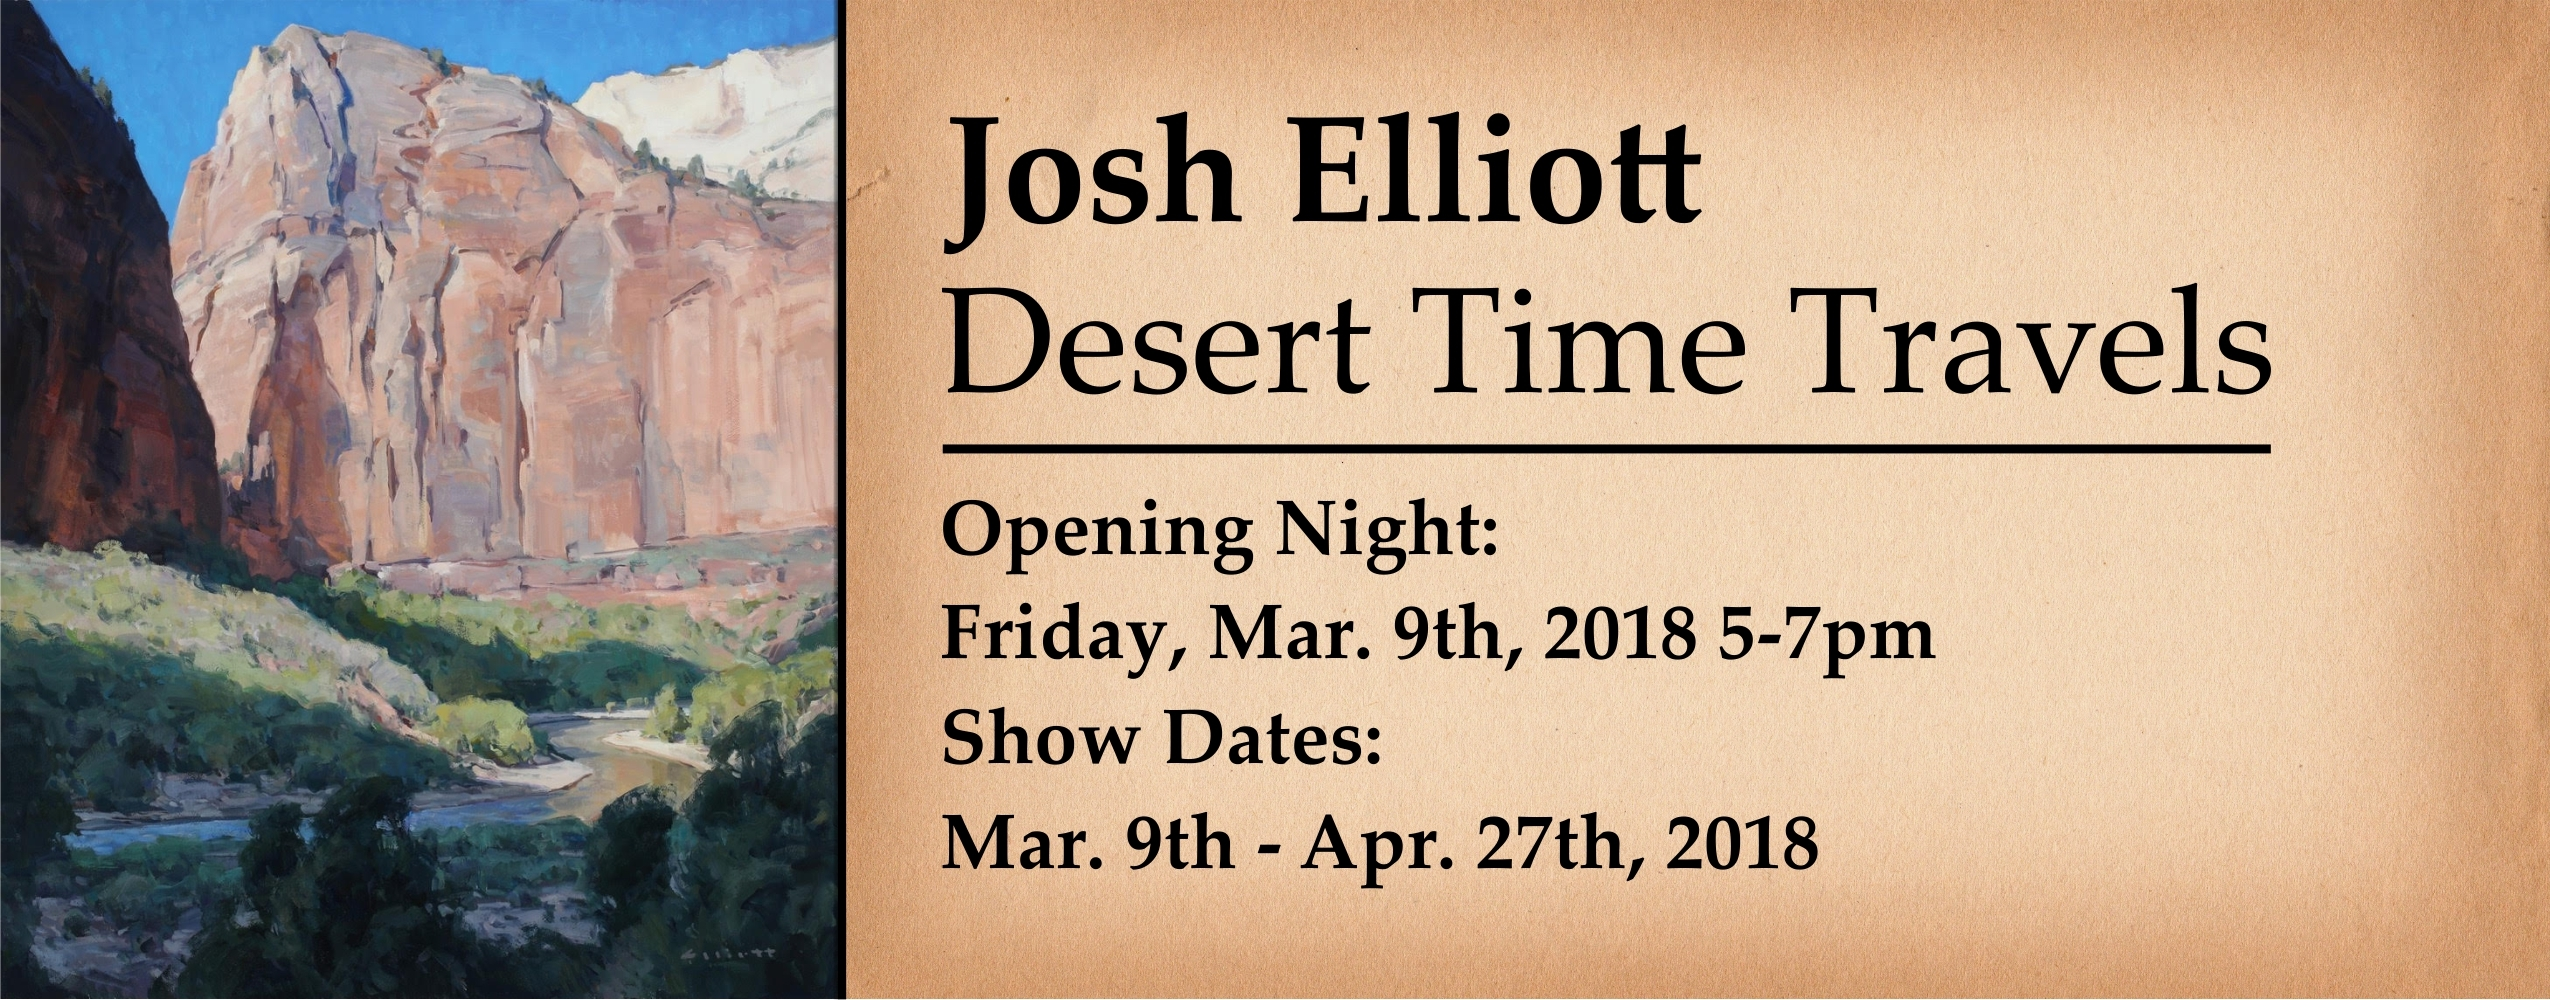 Josh Elliott Desert Dreams